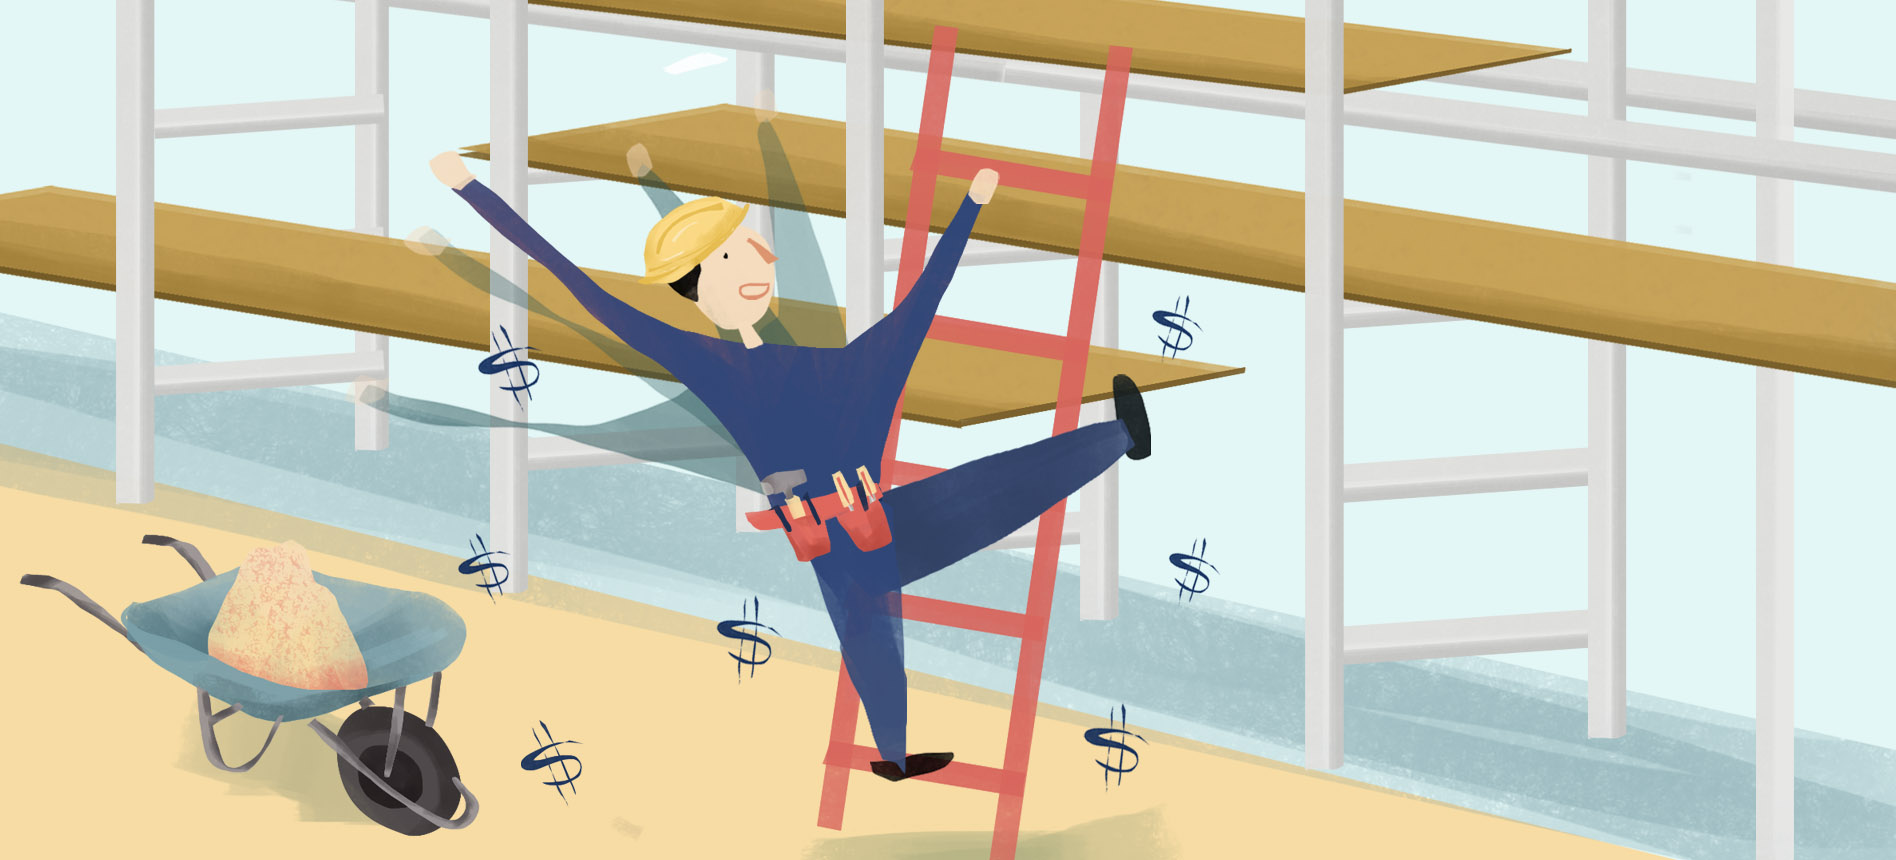 An illustration of a worker falling from a ladder